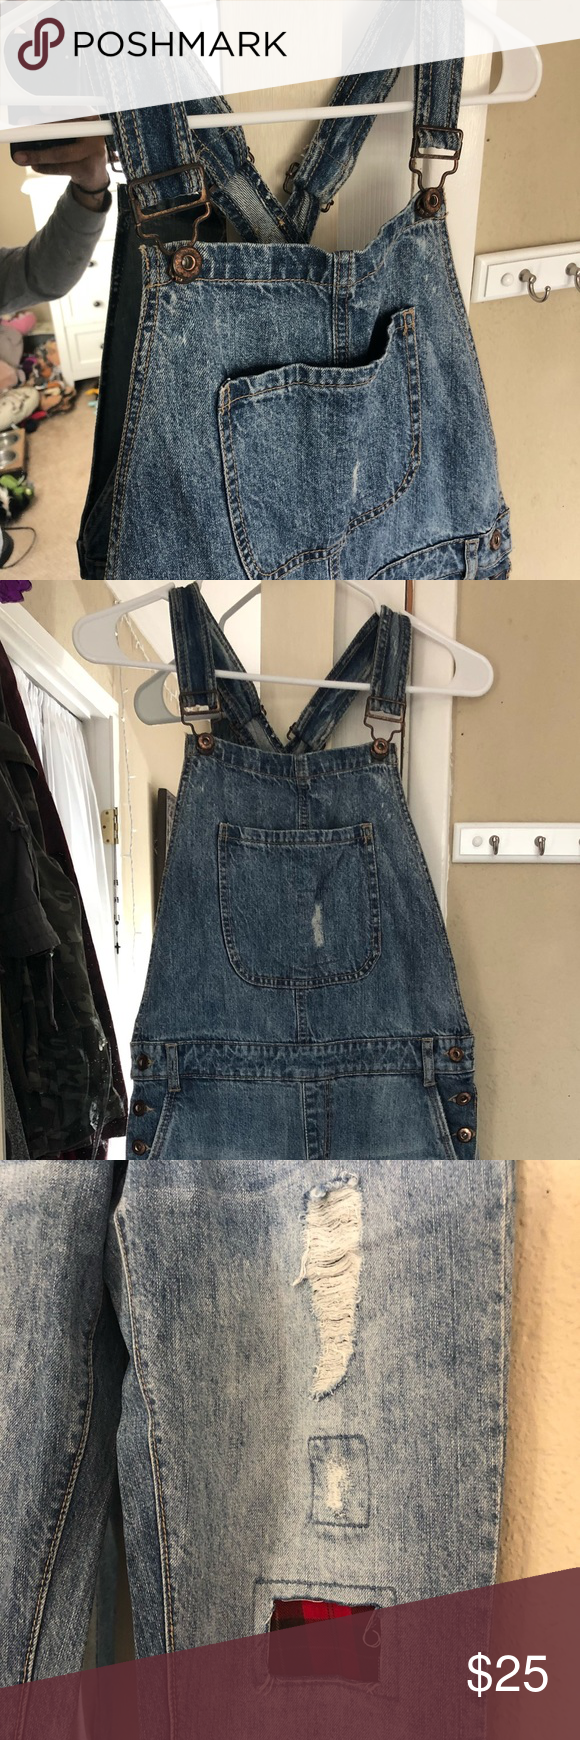 f0754f96264 Forever 21 Distressed Denim Overalls Distressed blue denim W plaid patches  New condition. Forever 21 Jeans Overalls